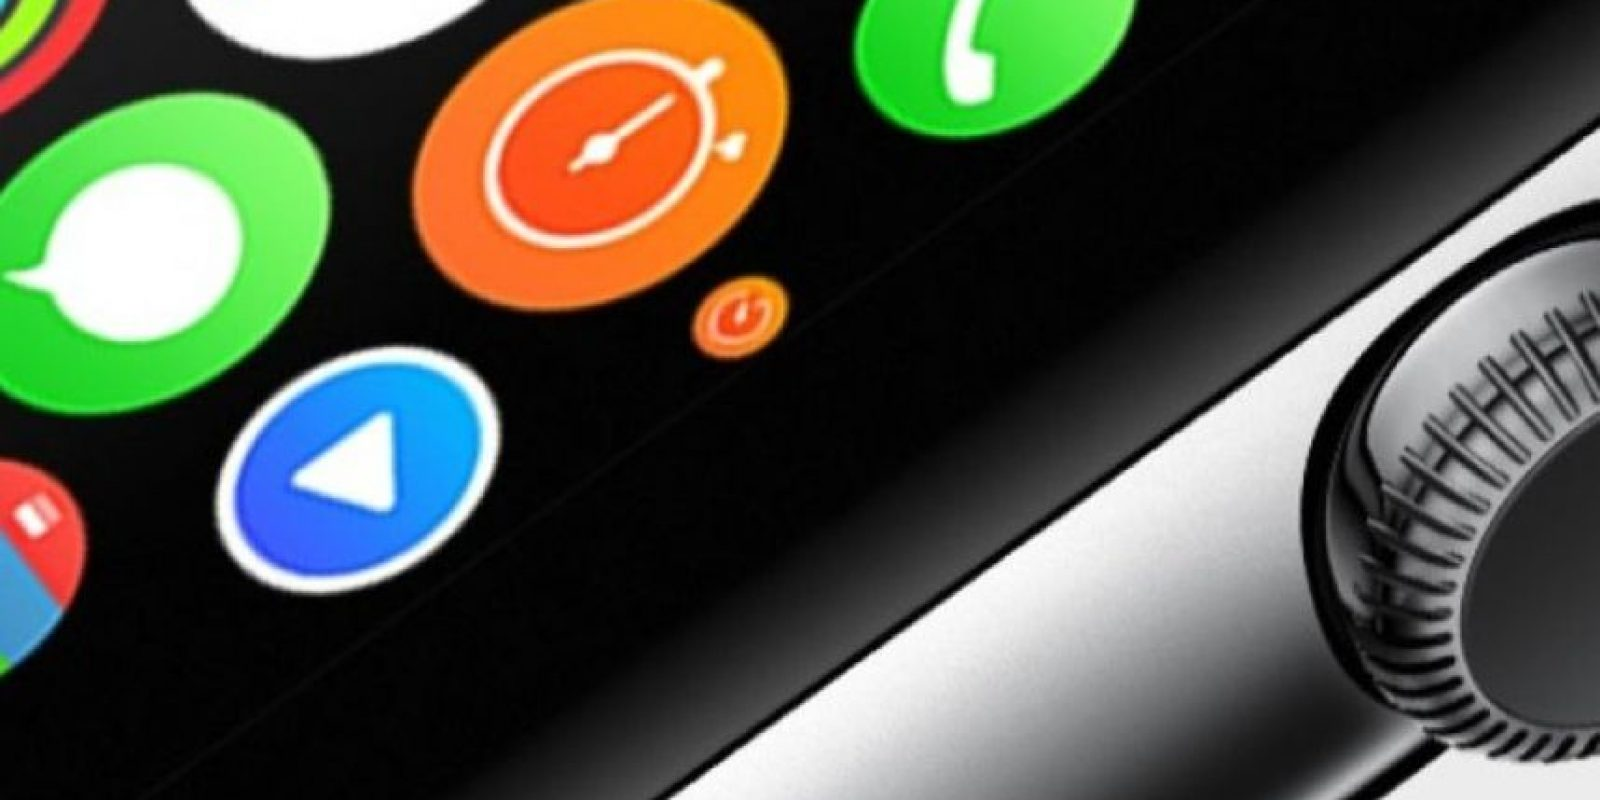 Policías dicen que usar un Apple Watch es equiparable al uso del celular. Foto: Apple